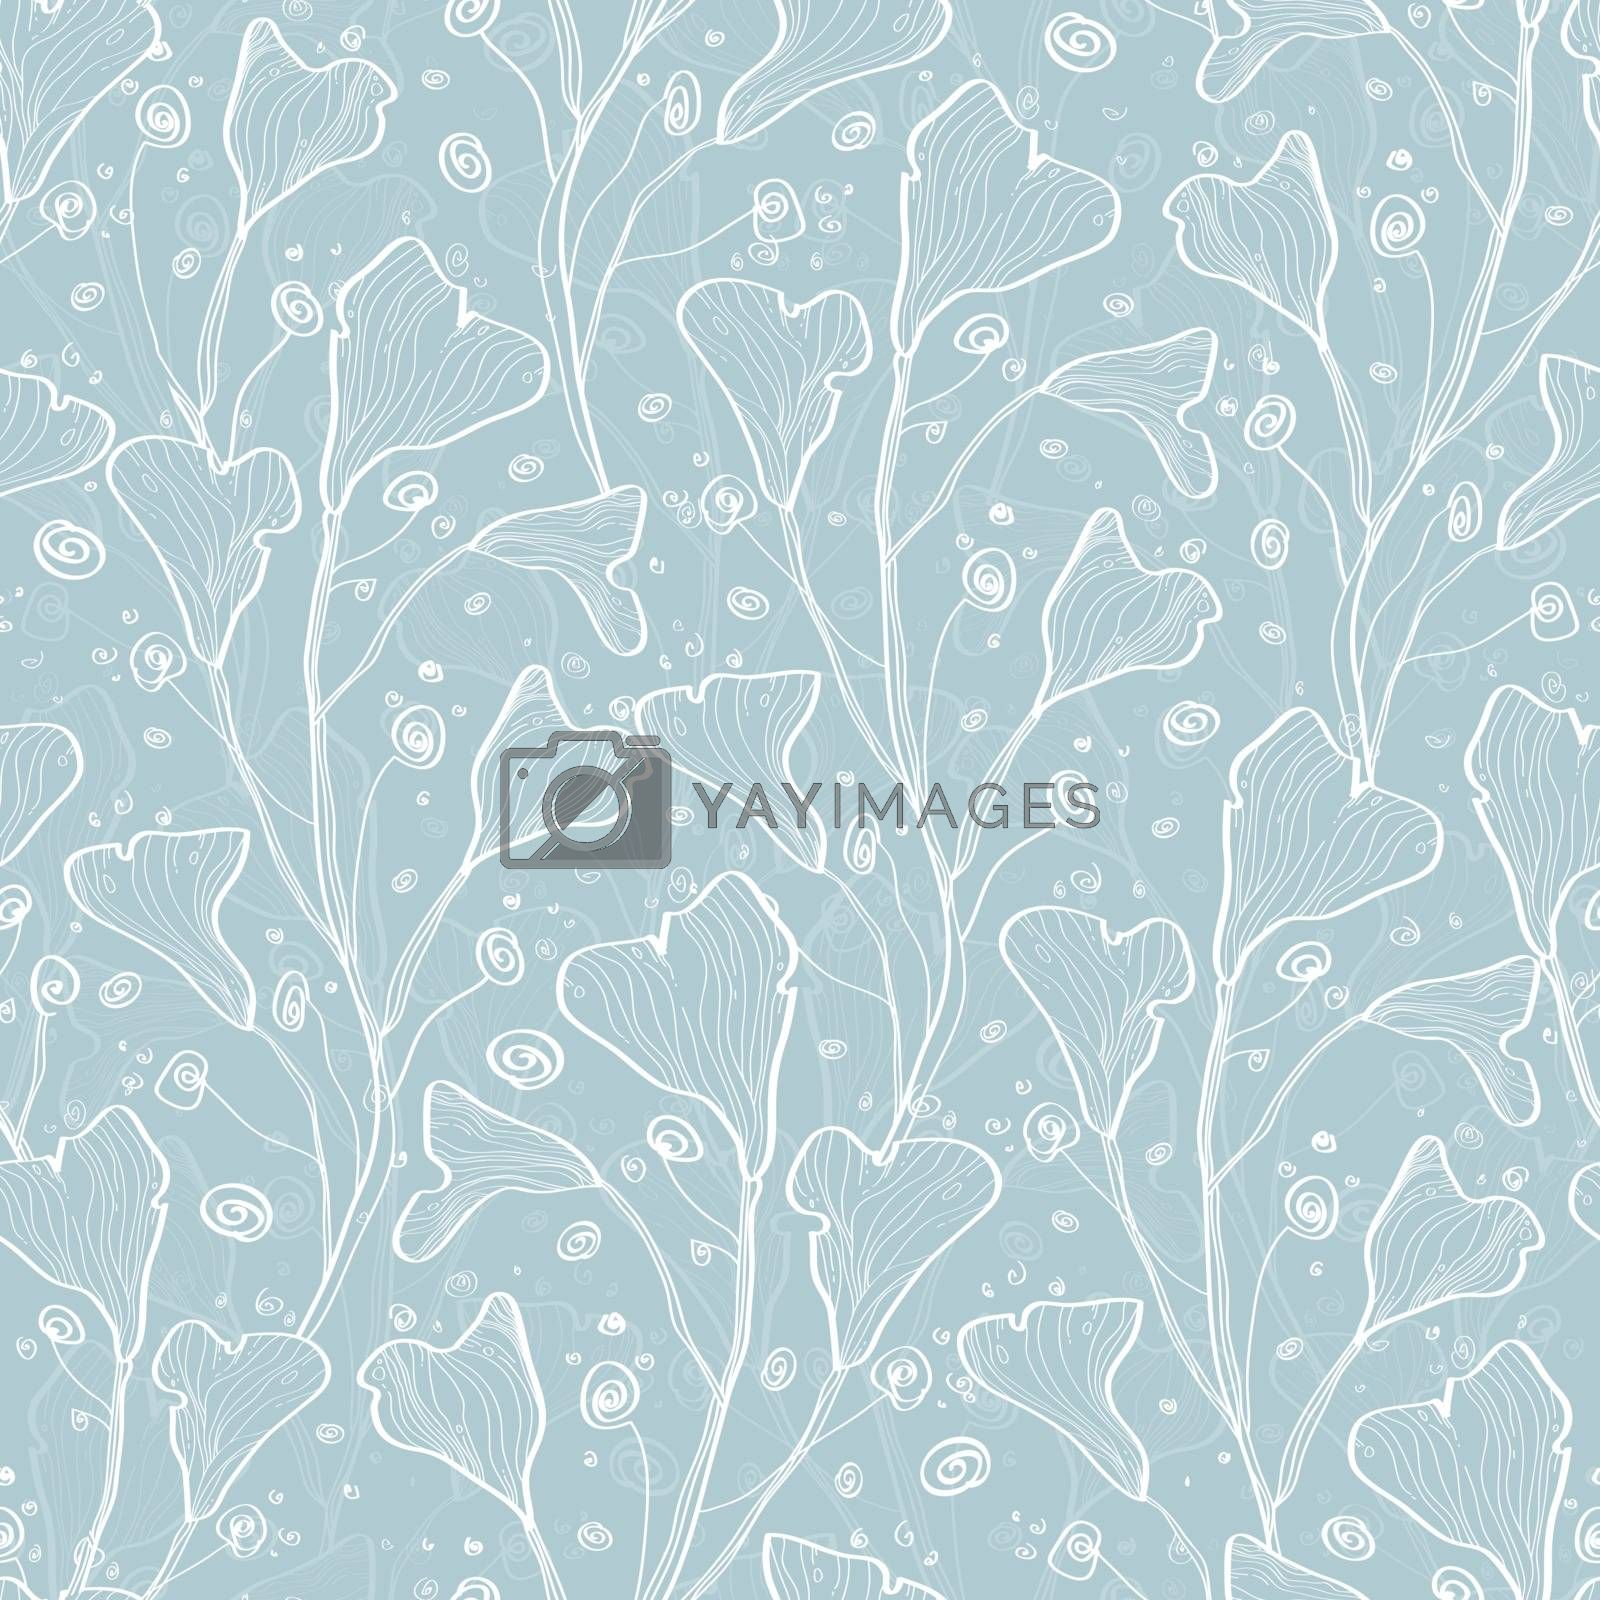 Vector silver leaves texture seamless pattern background graphic design